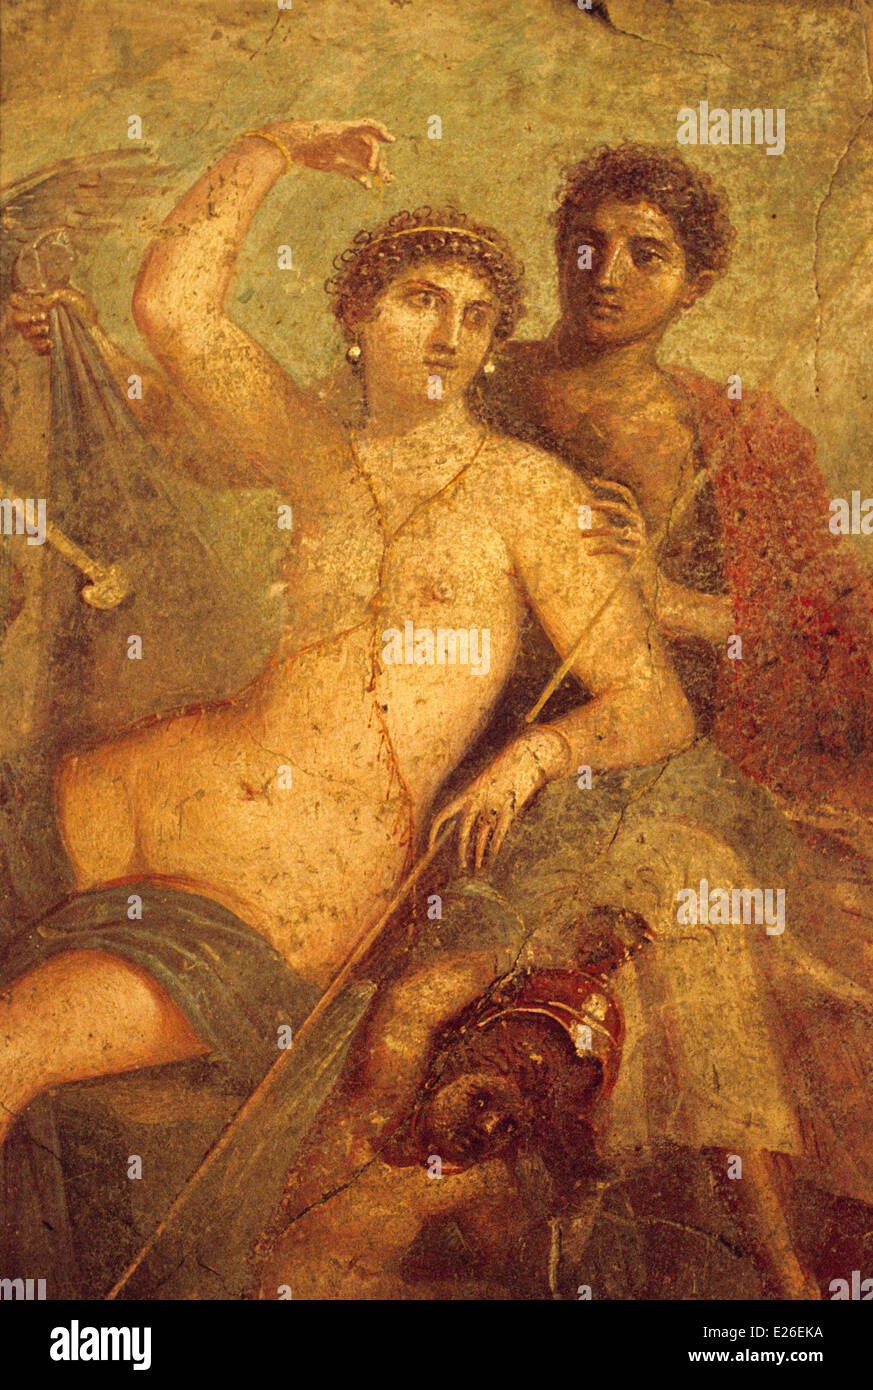 ancient art,Pompeii,Aphrodite and Ares,National Archaeological Museum,Naples - Stock Image